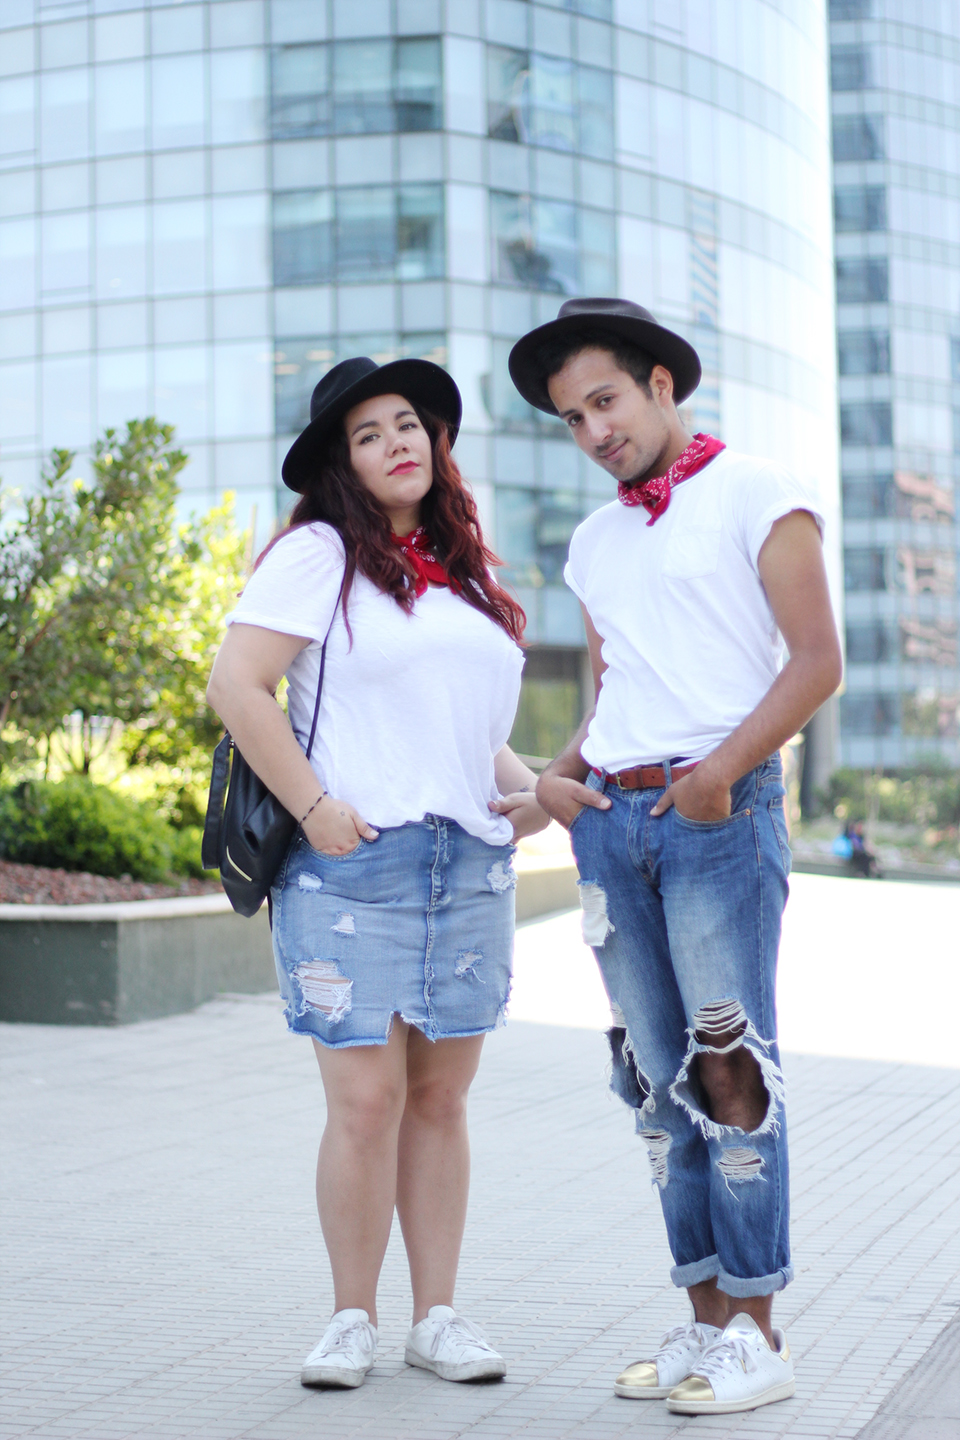 Outfit match – steal his style ft. Doble check